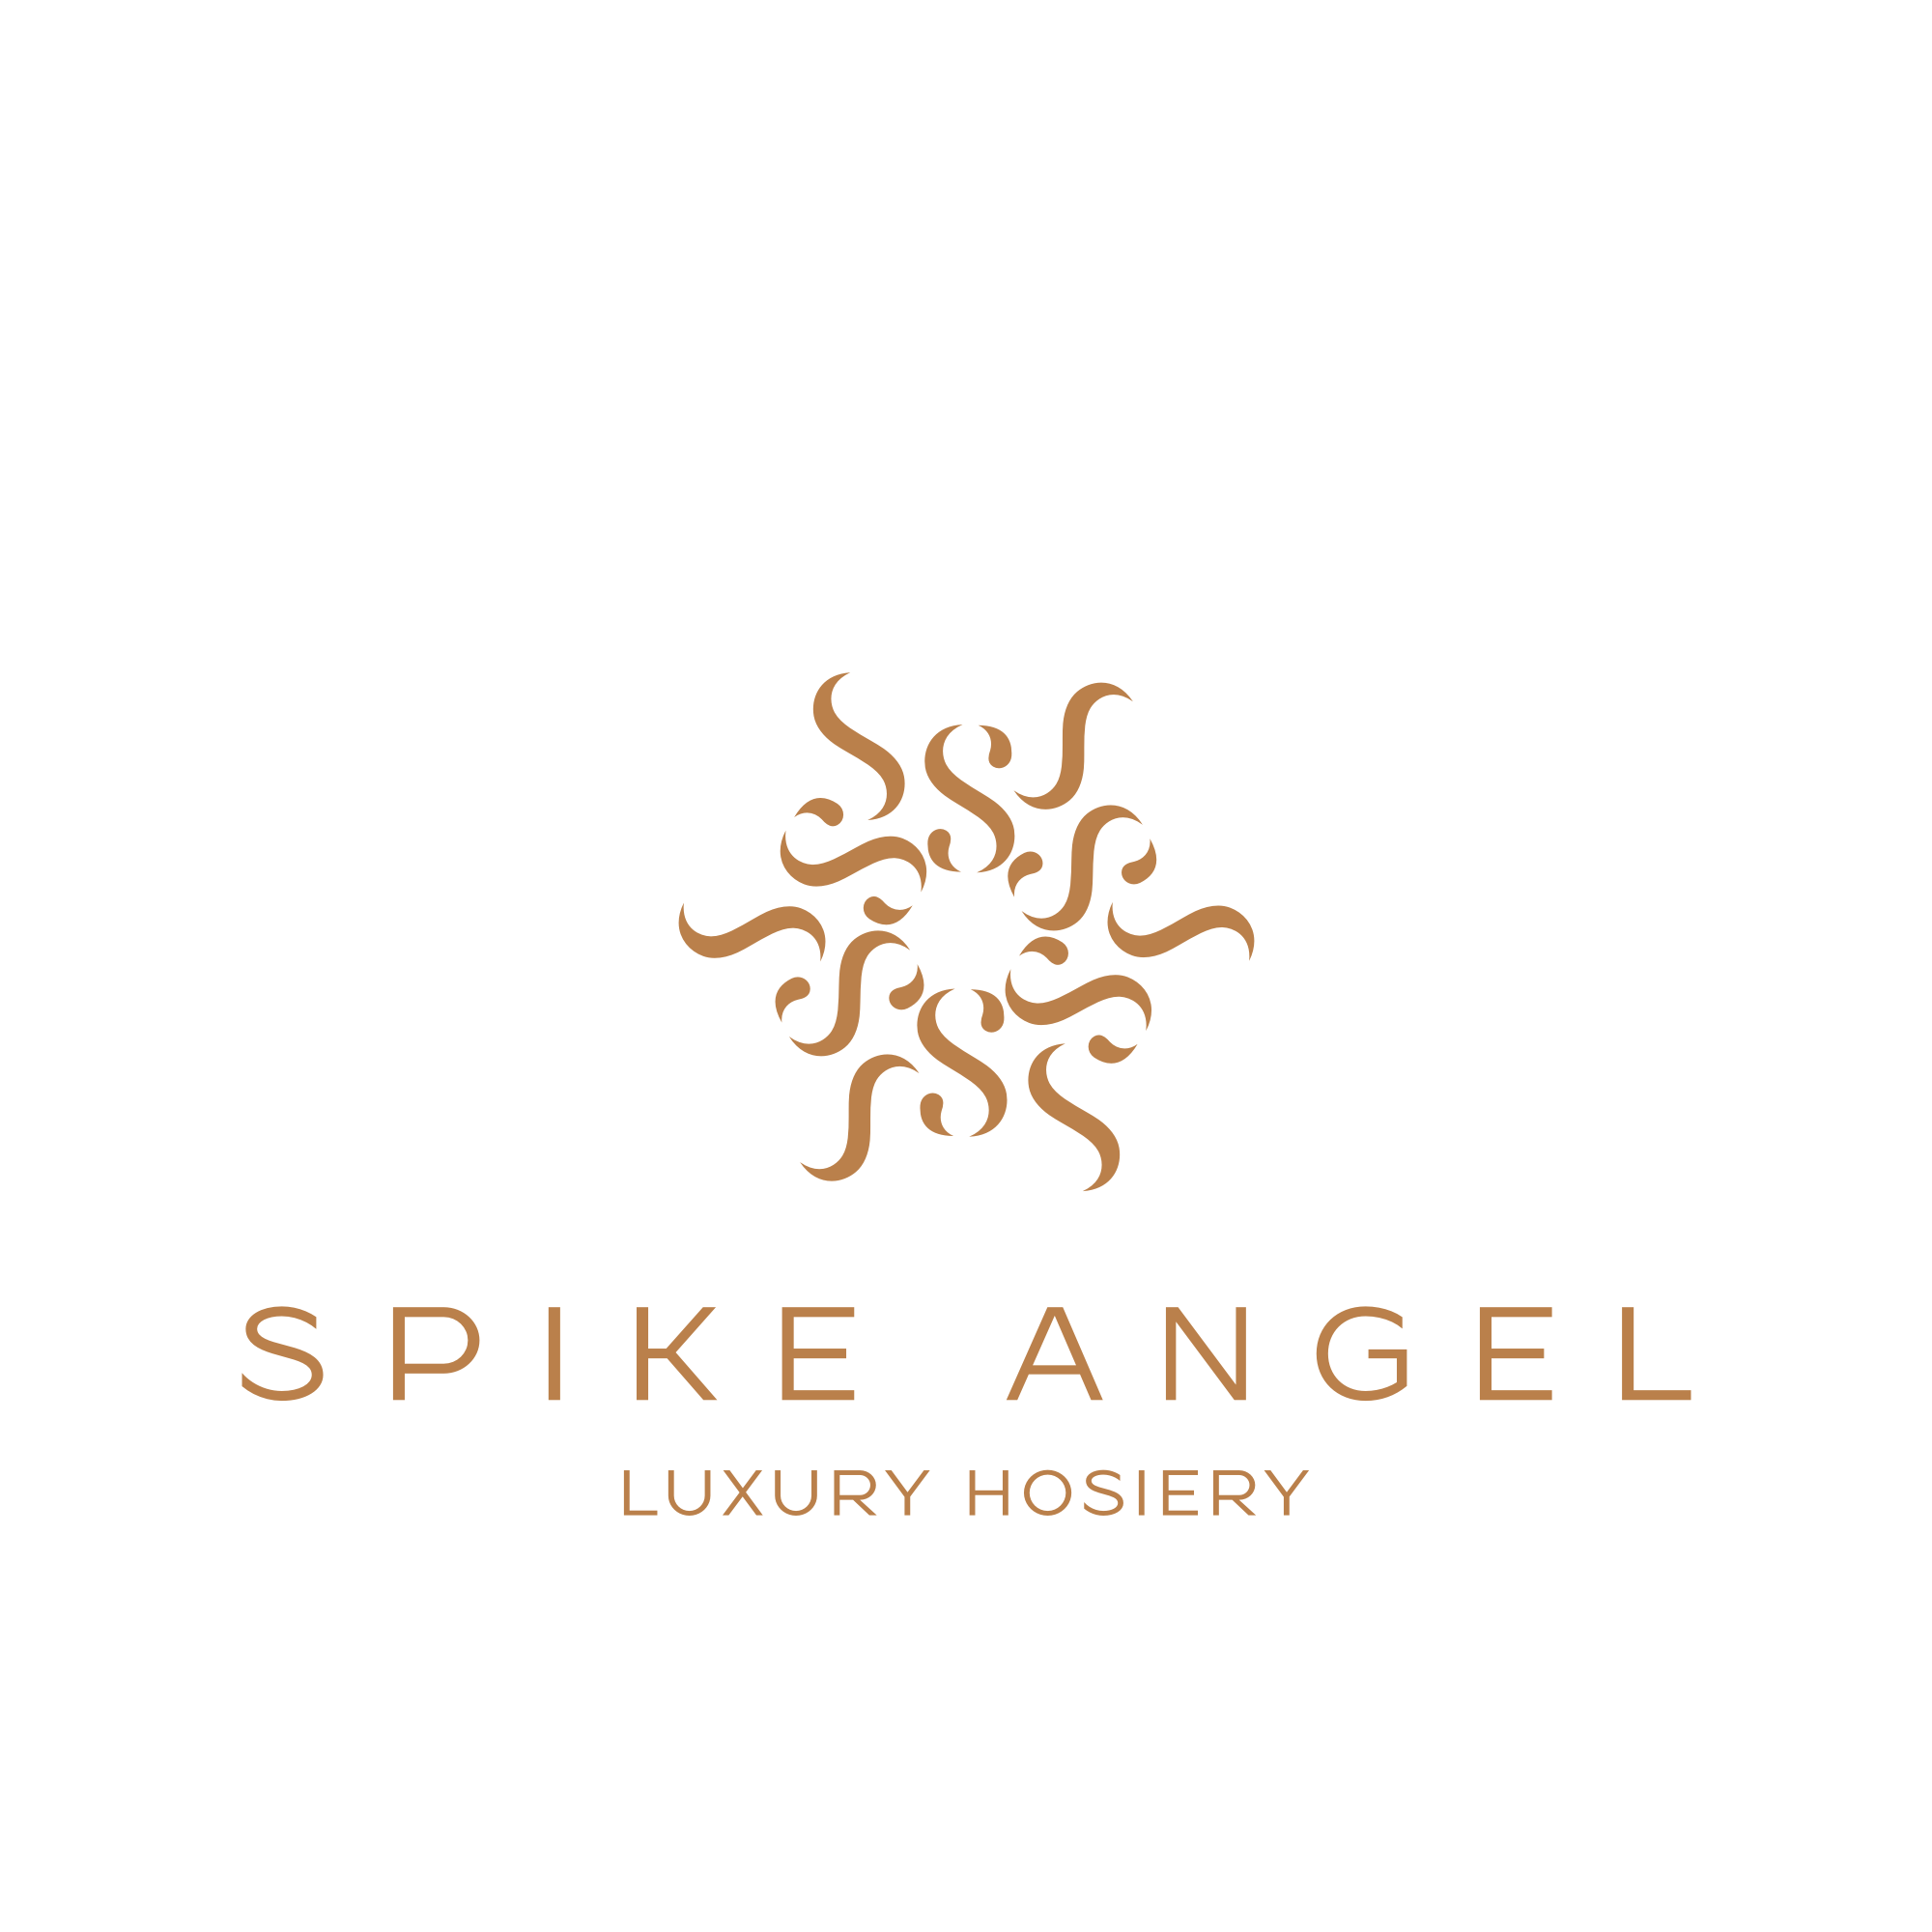 Create a sexy luxury hosiery company logo for Spike Angel